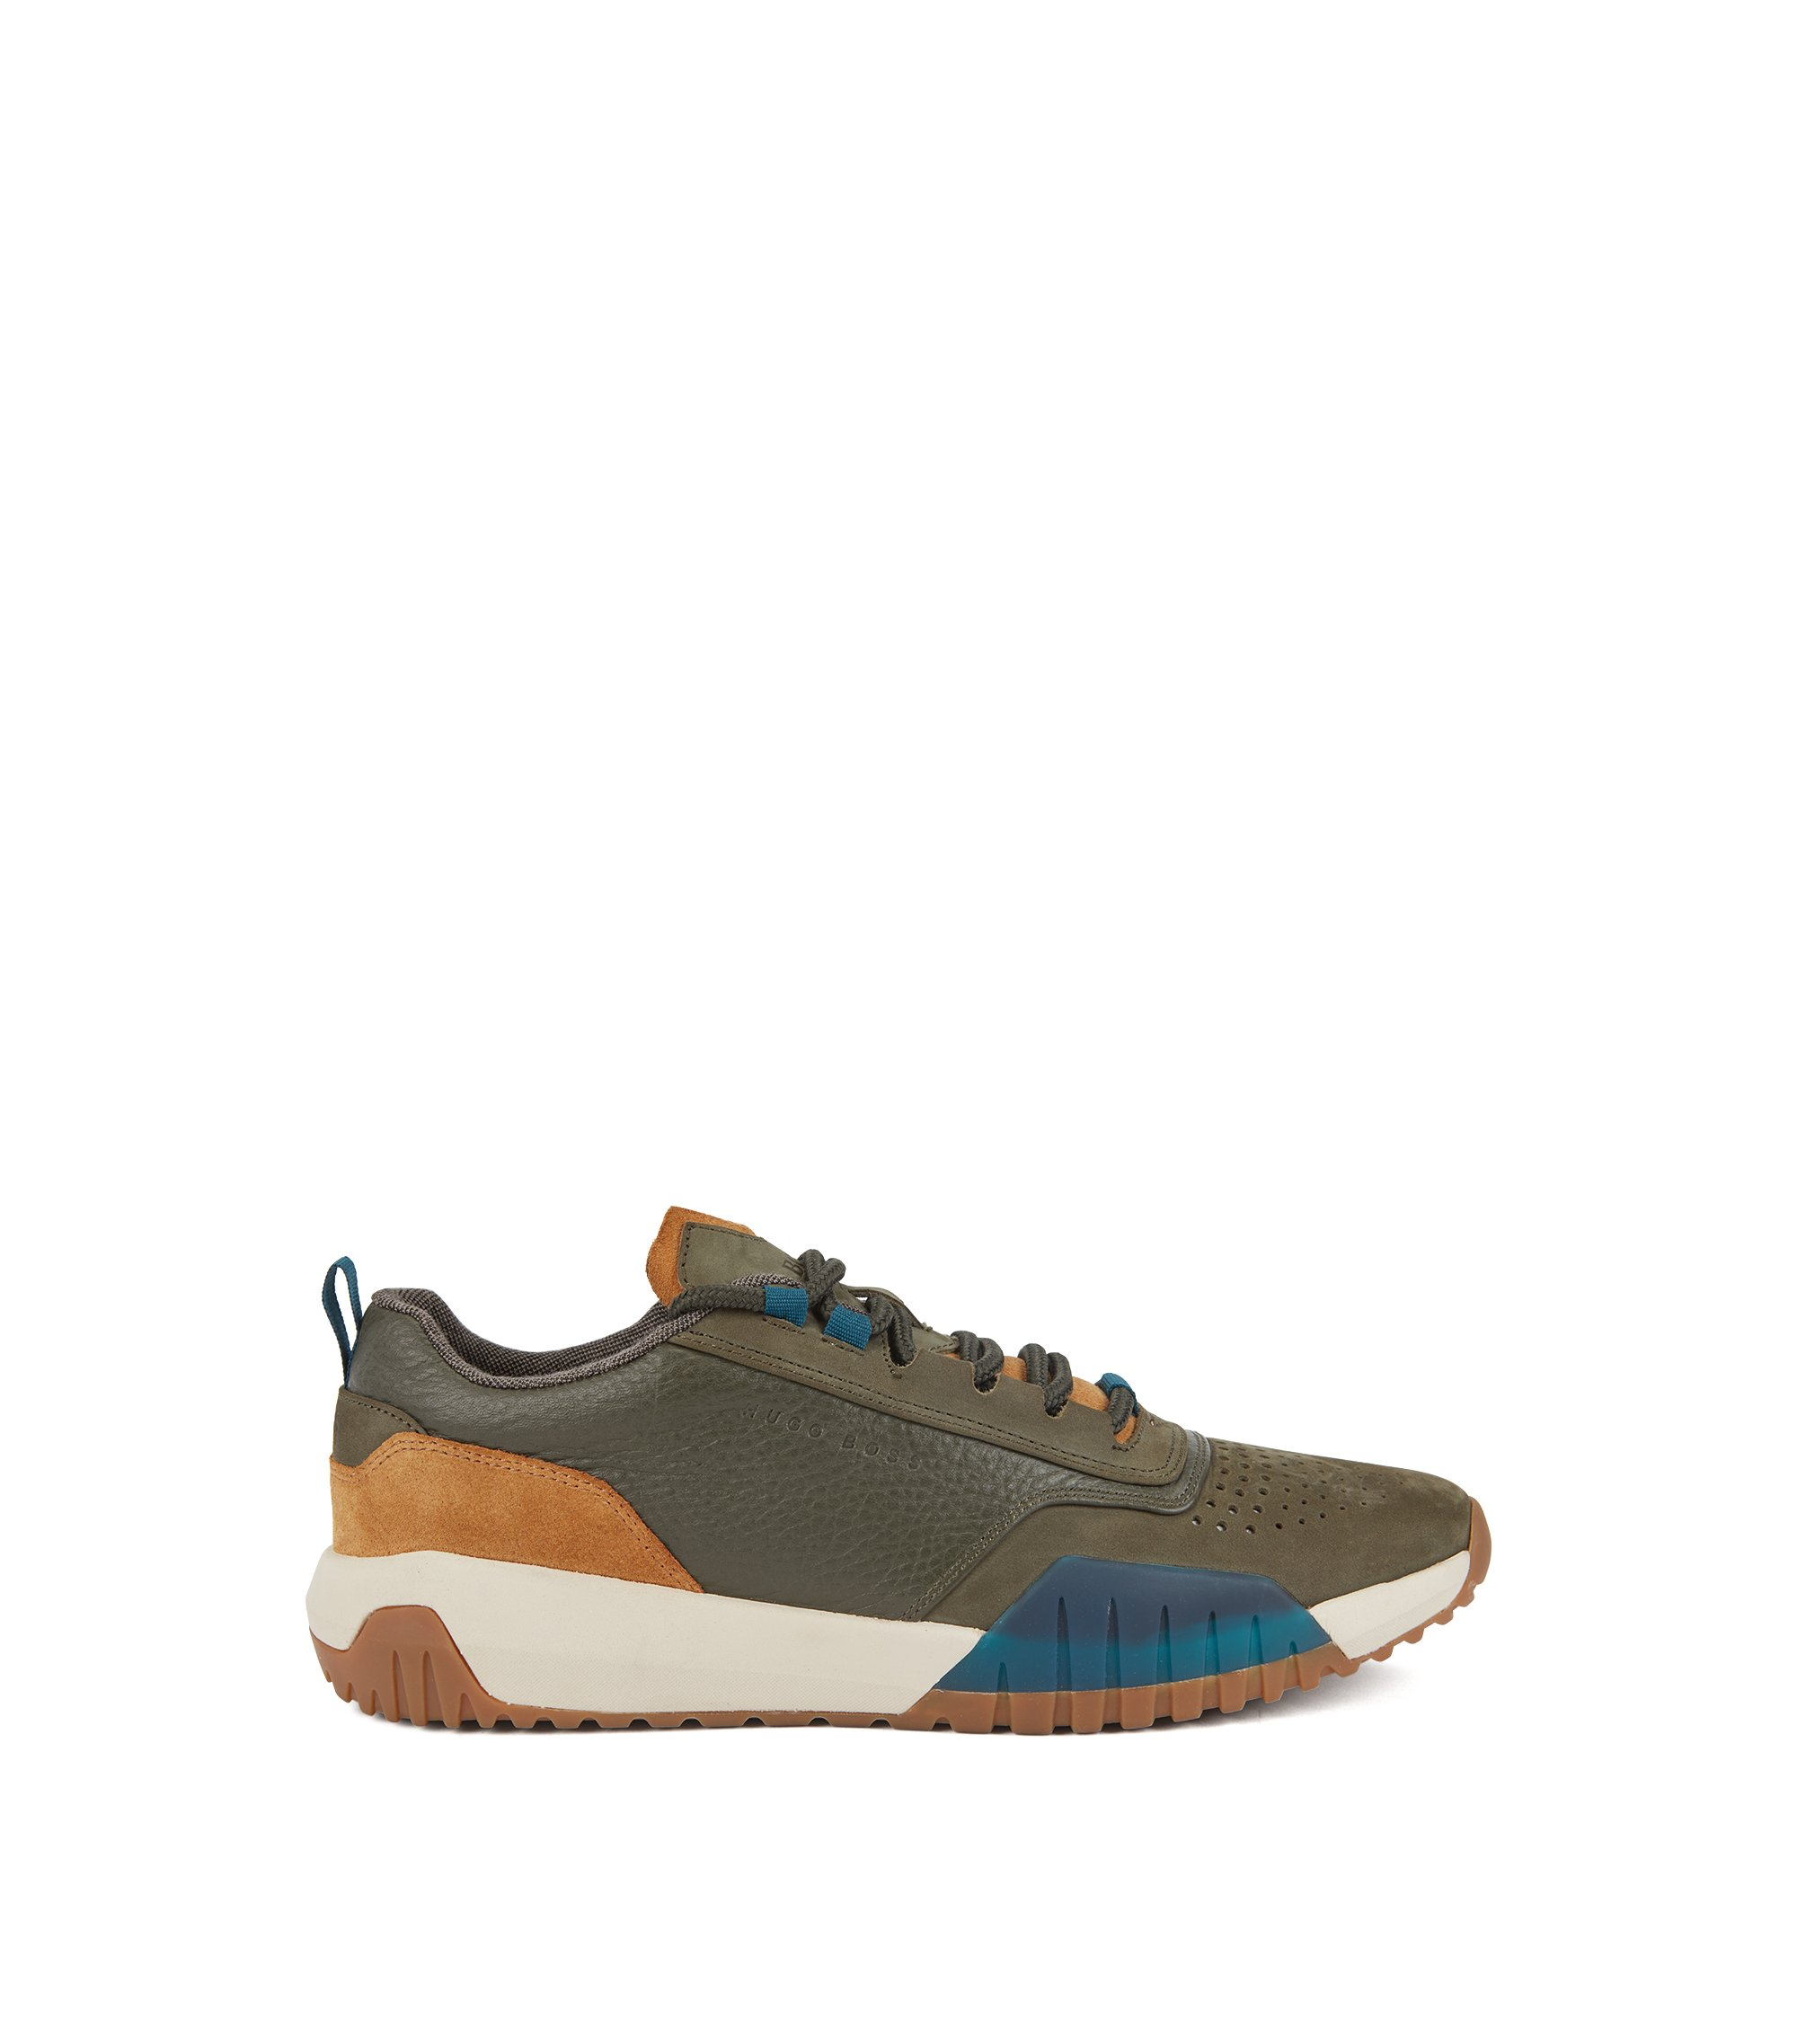 Running-inspired sneakers in nubuck, tumbled and suede leather, Dark Green